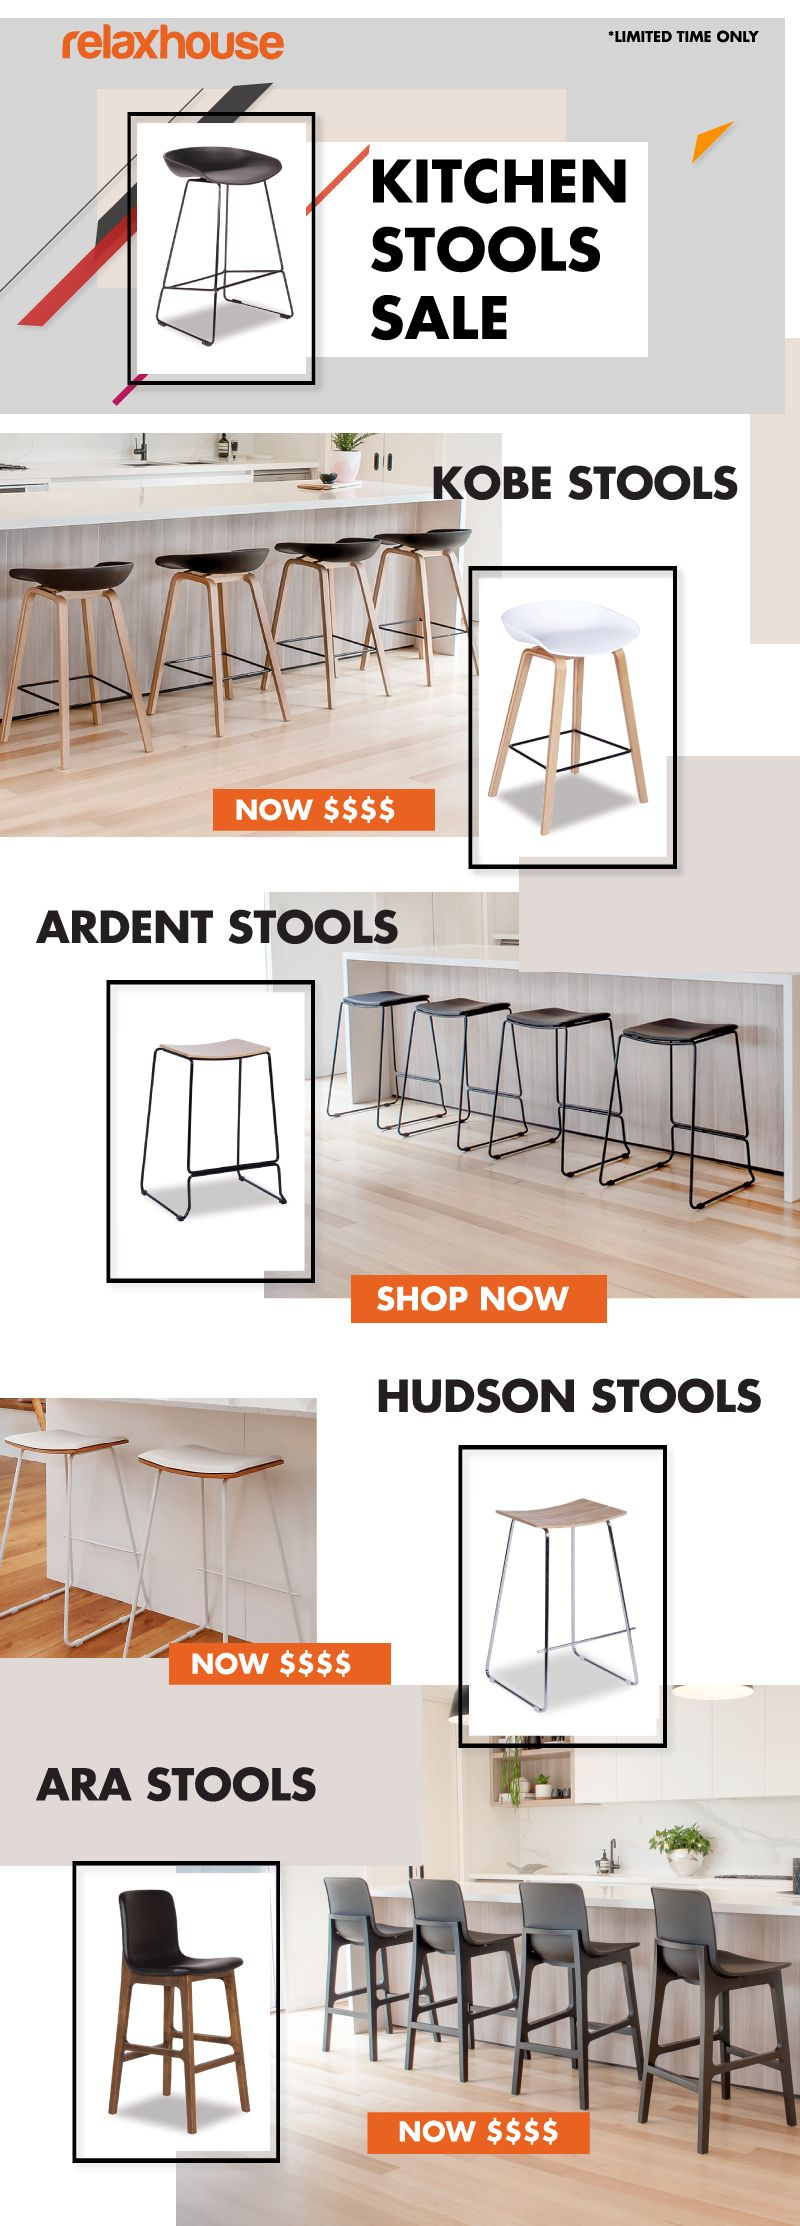 At Relax House, our kitchen stools and Modern breakfast